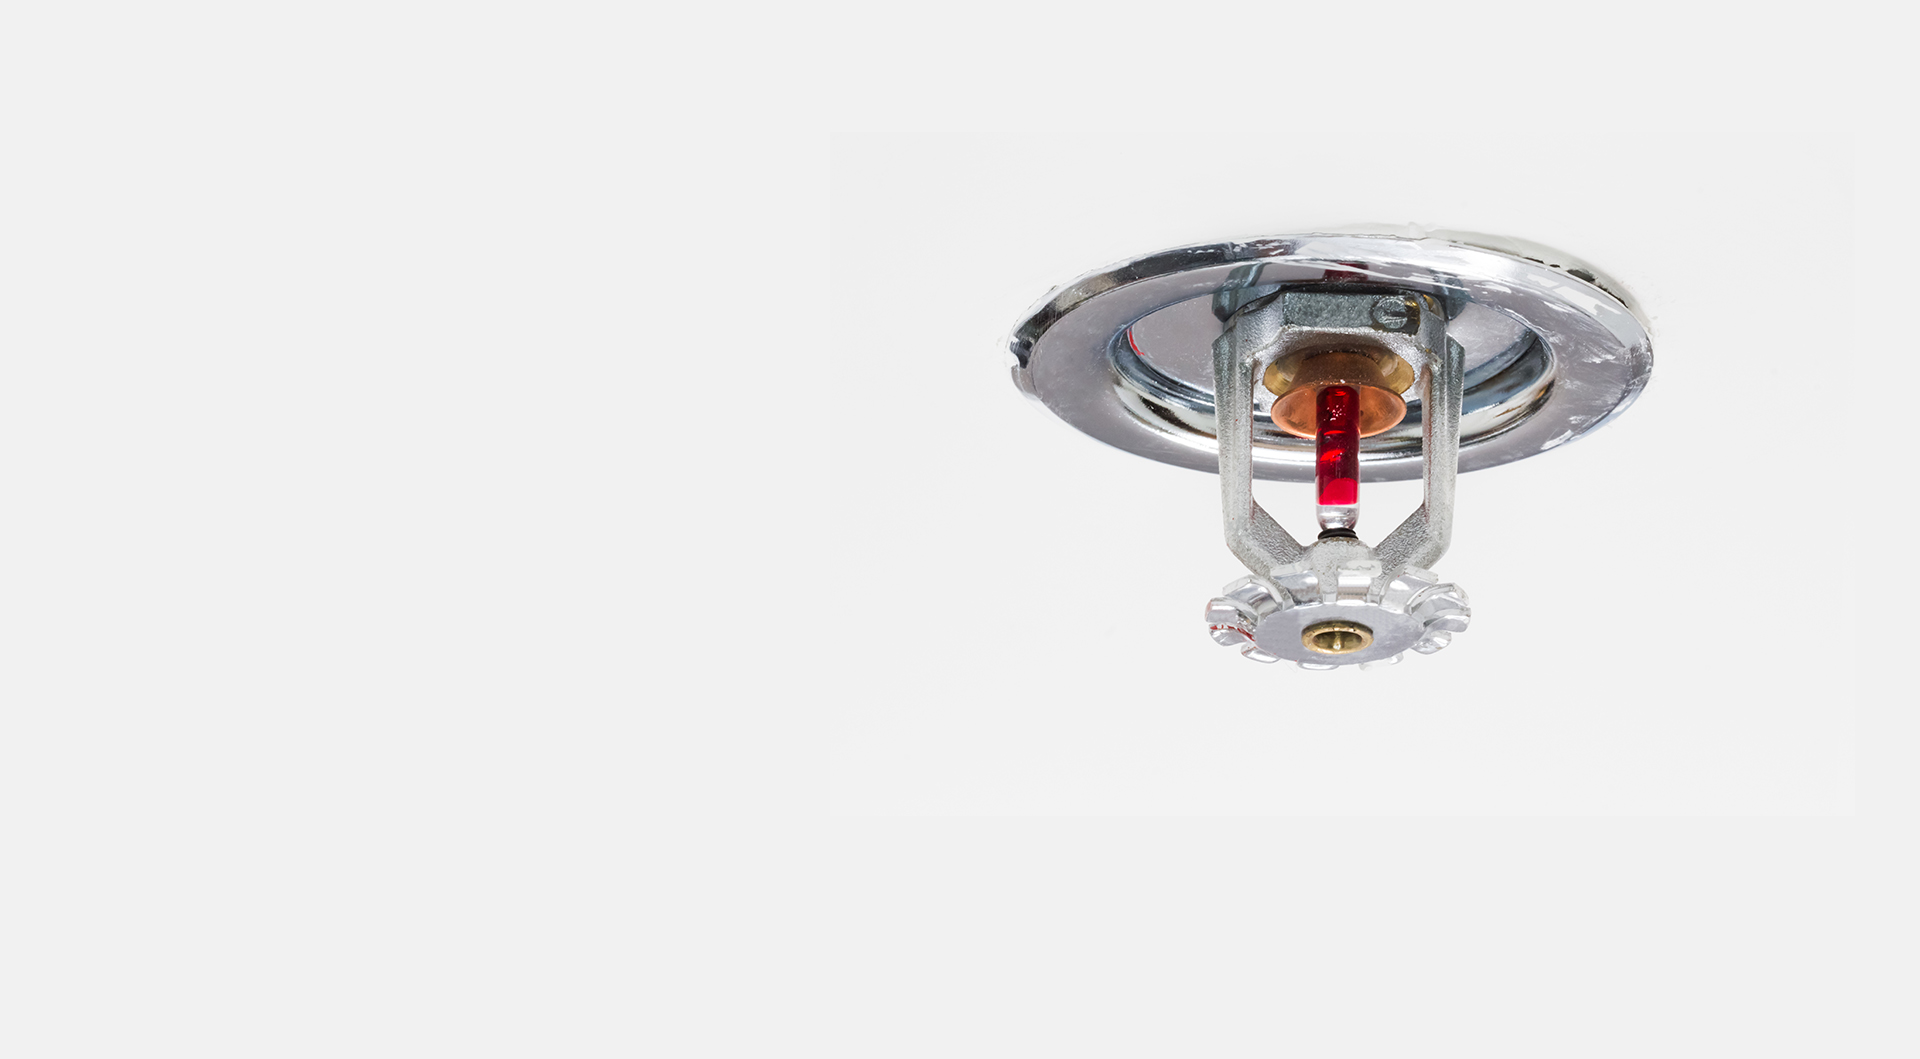 fire sprinkler contractor of choice - Home Fire Sprinkler System Design